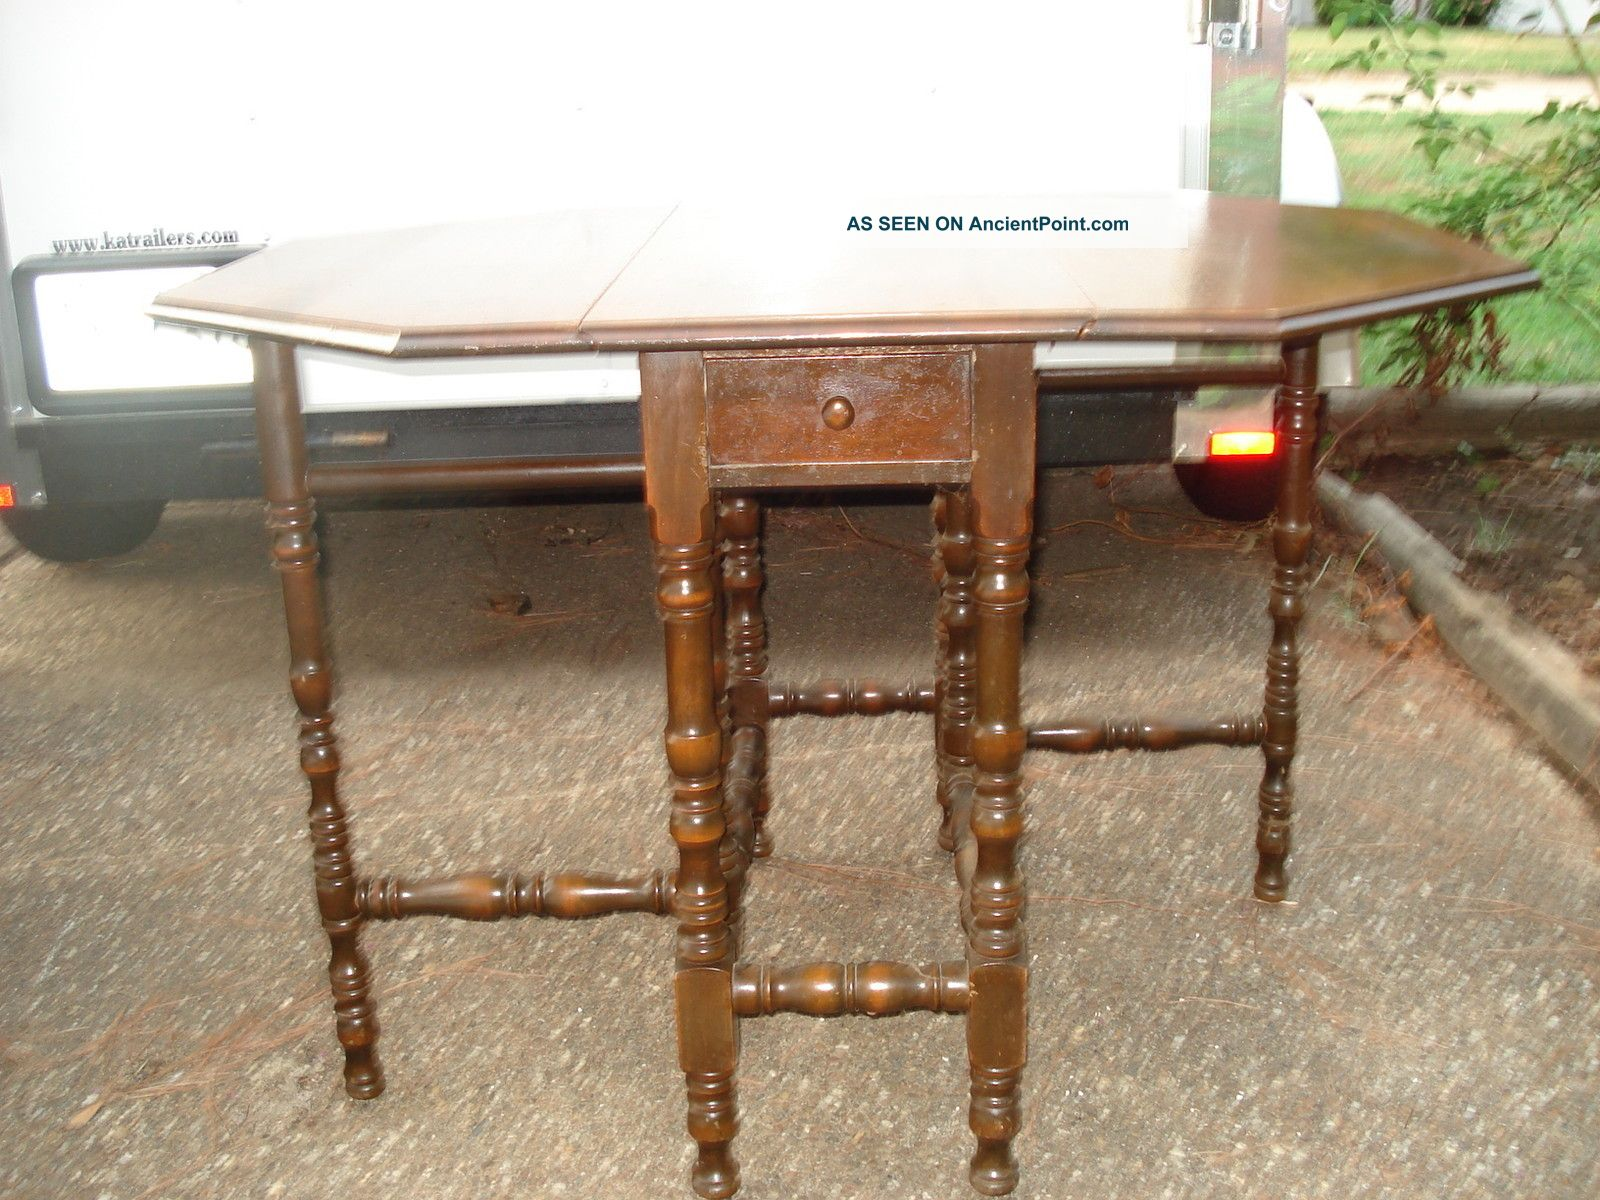 Brilliant Antique Drop Leaf Gate Leg Table 1900 1600 x 1200 · 310 kB · jpeg